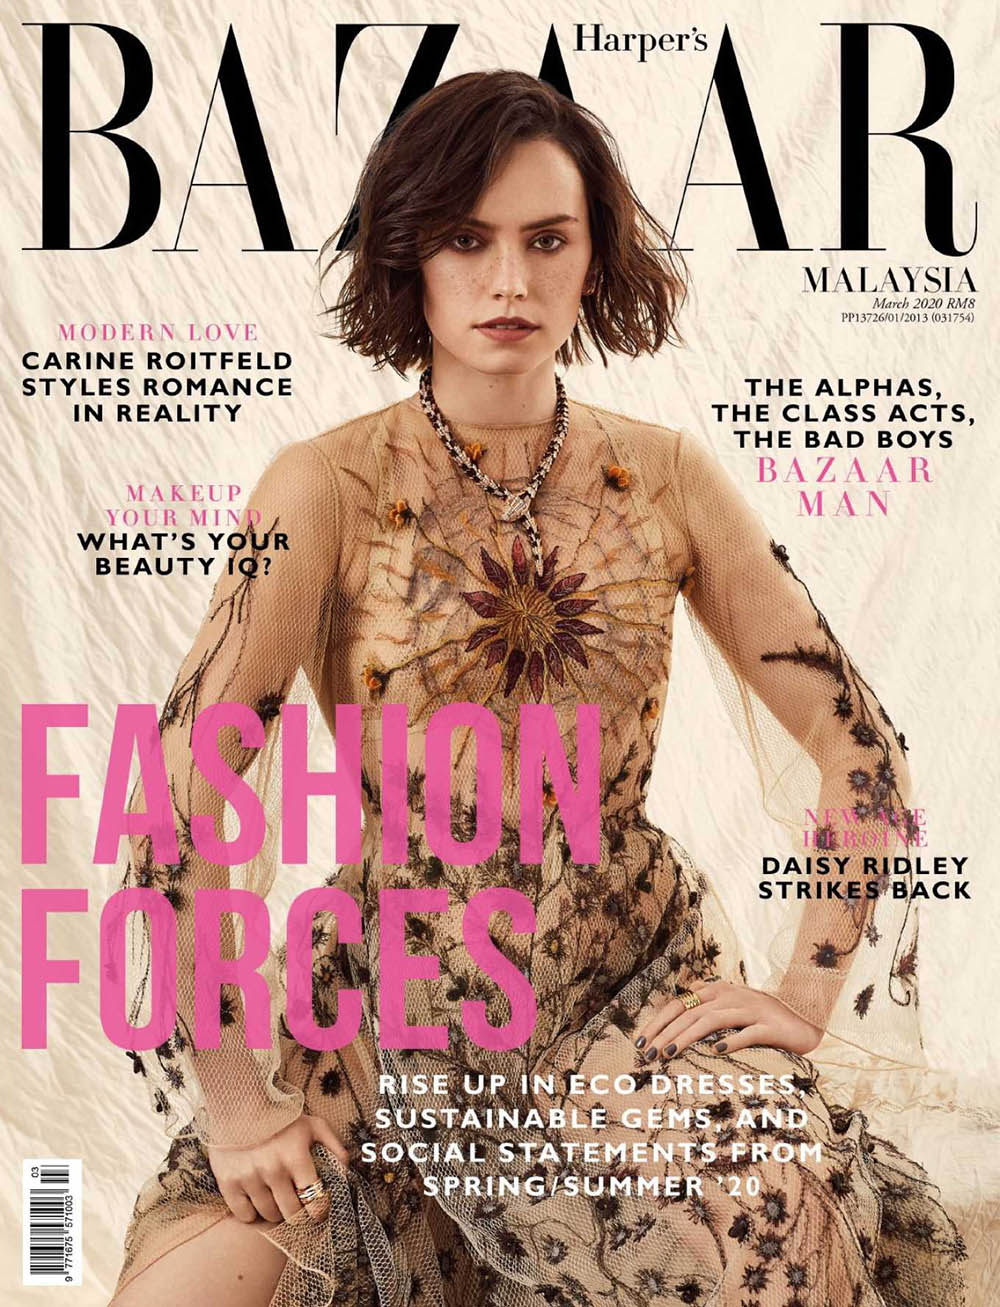 Daisy Ridley covers Harper's Bazaar Malaysia March 2020 by Lara Jade